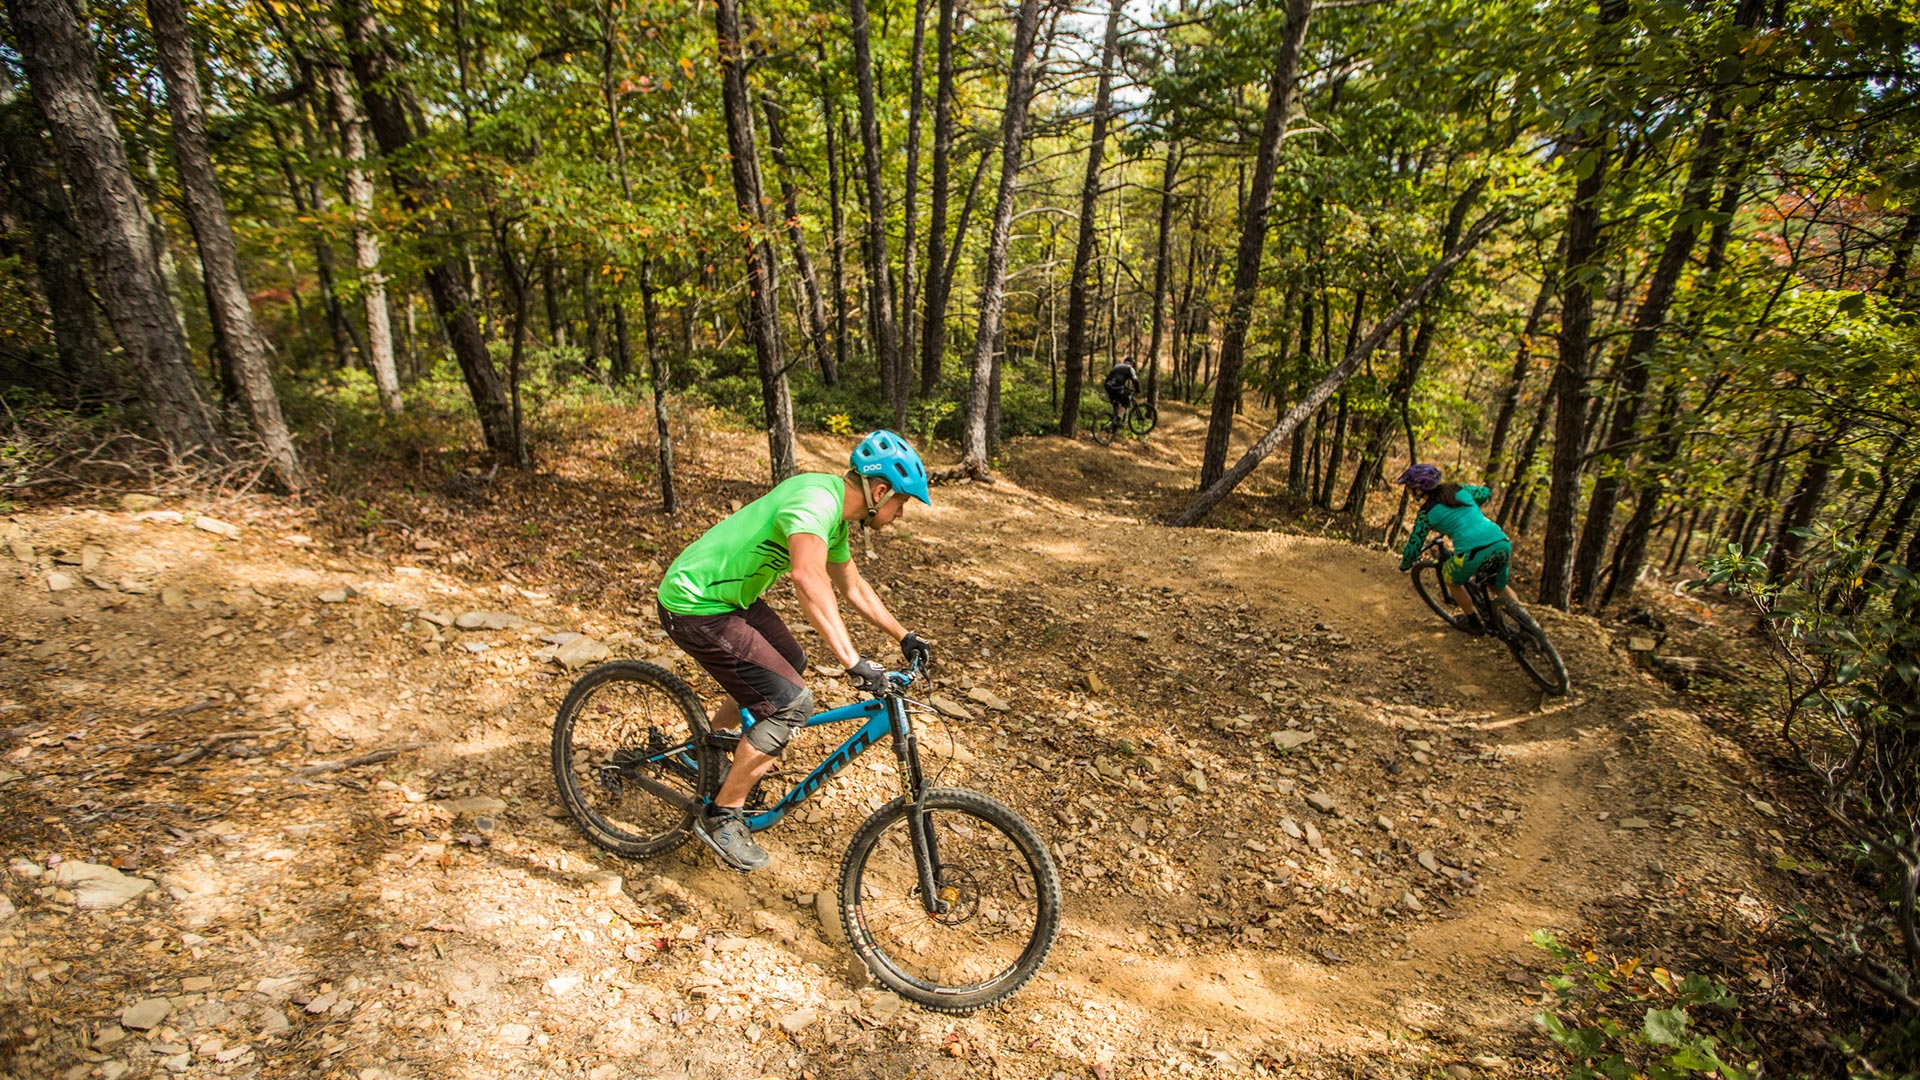 Carvins-Cove-OG-Mountain-Bike-Trail-Downhill-Roanoke-VA